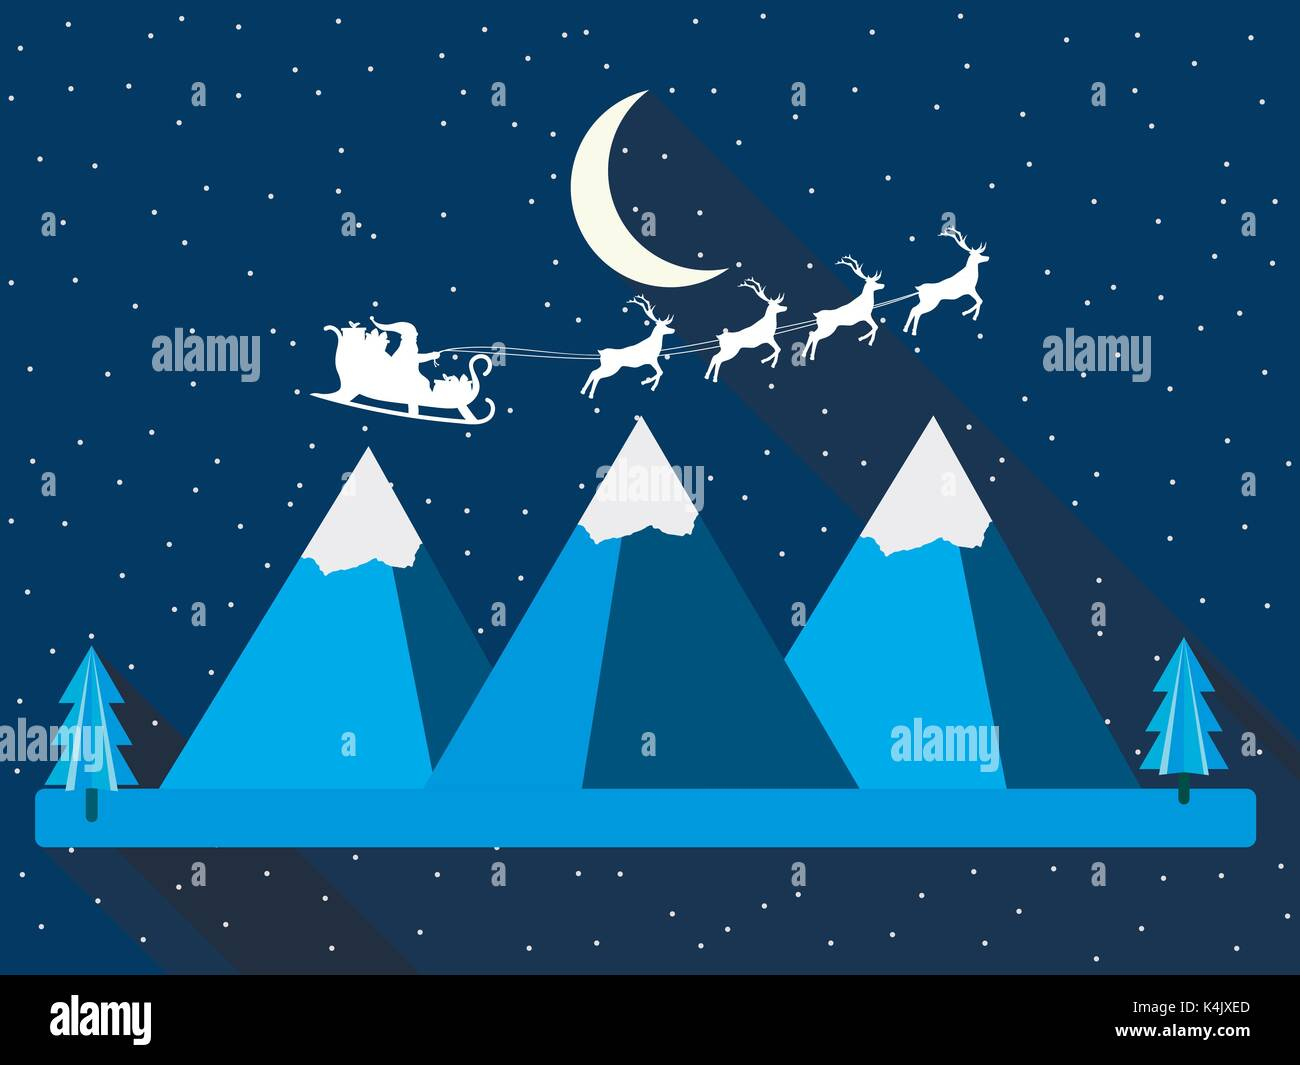 Christmas background. Santa Claus is flying in his sleigh. Mountains in a flat style with a long shadow. Vector illustration. - Stock Vector